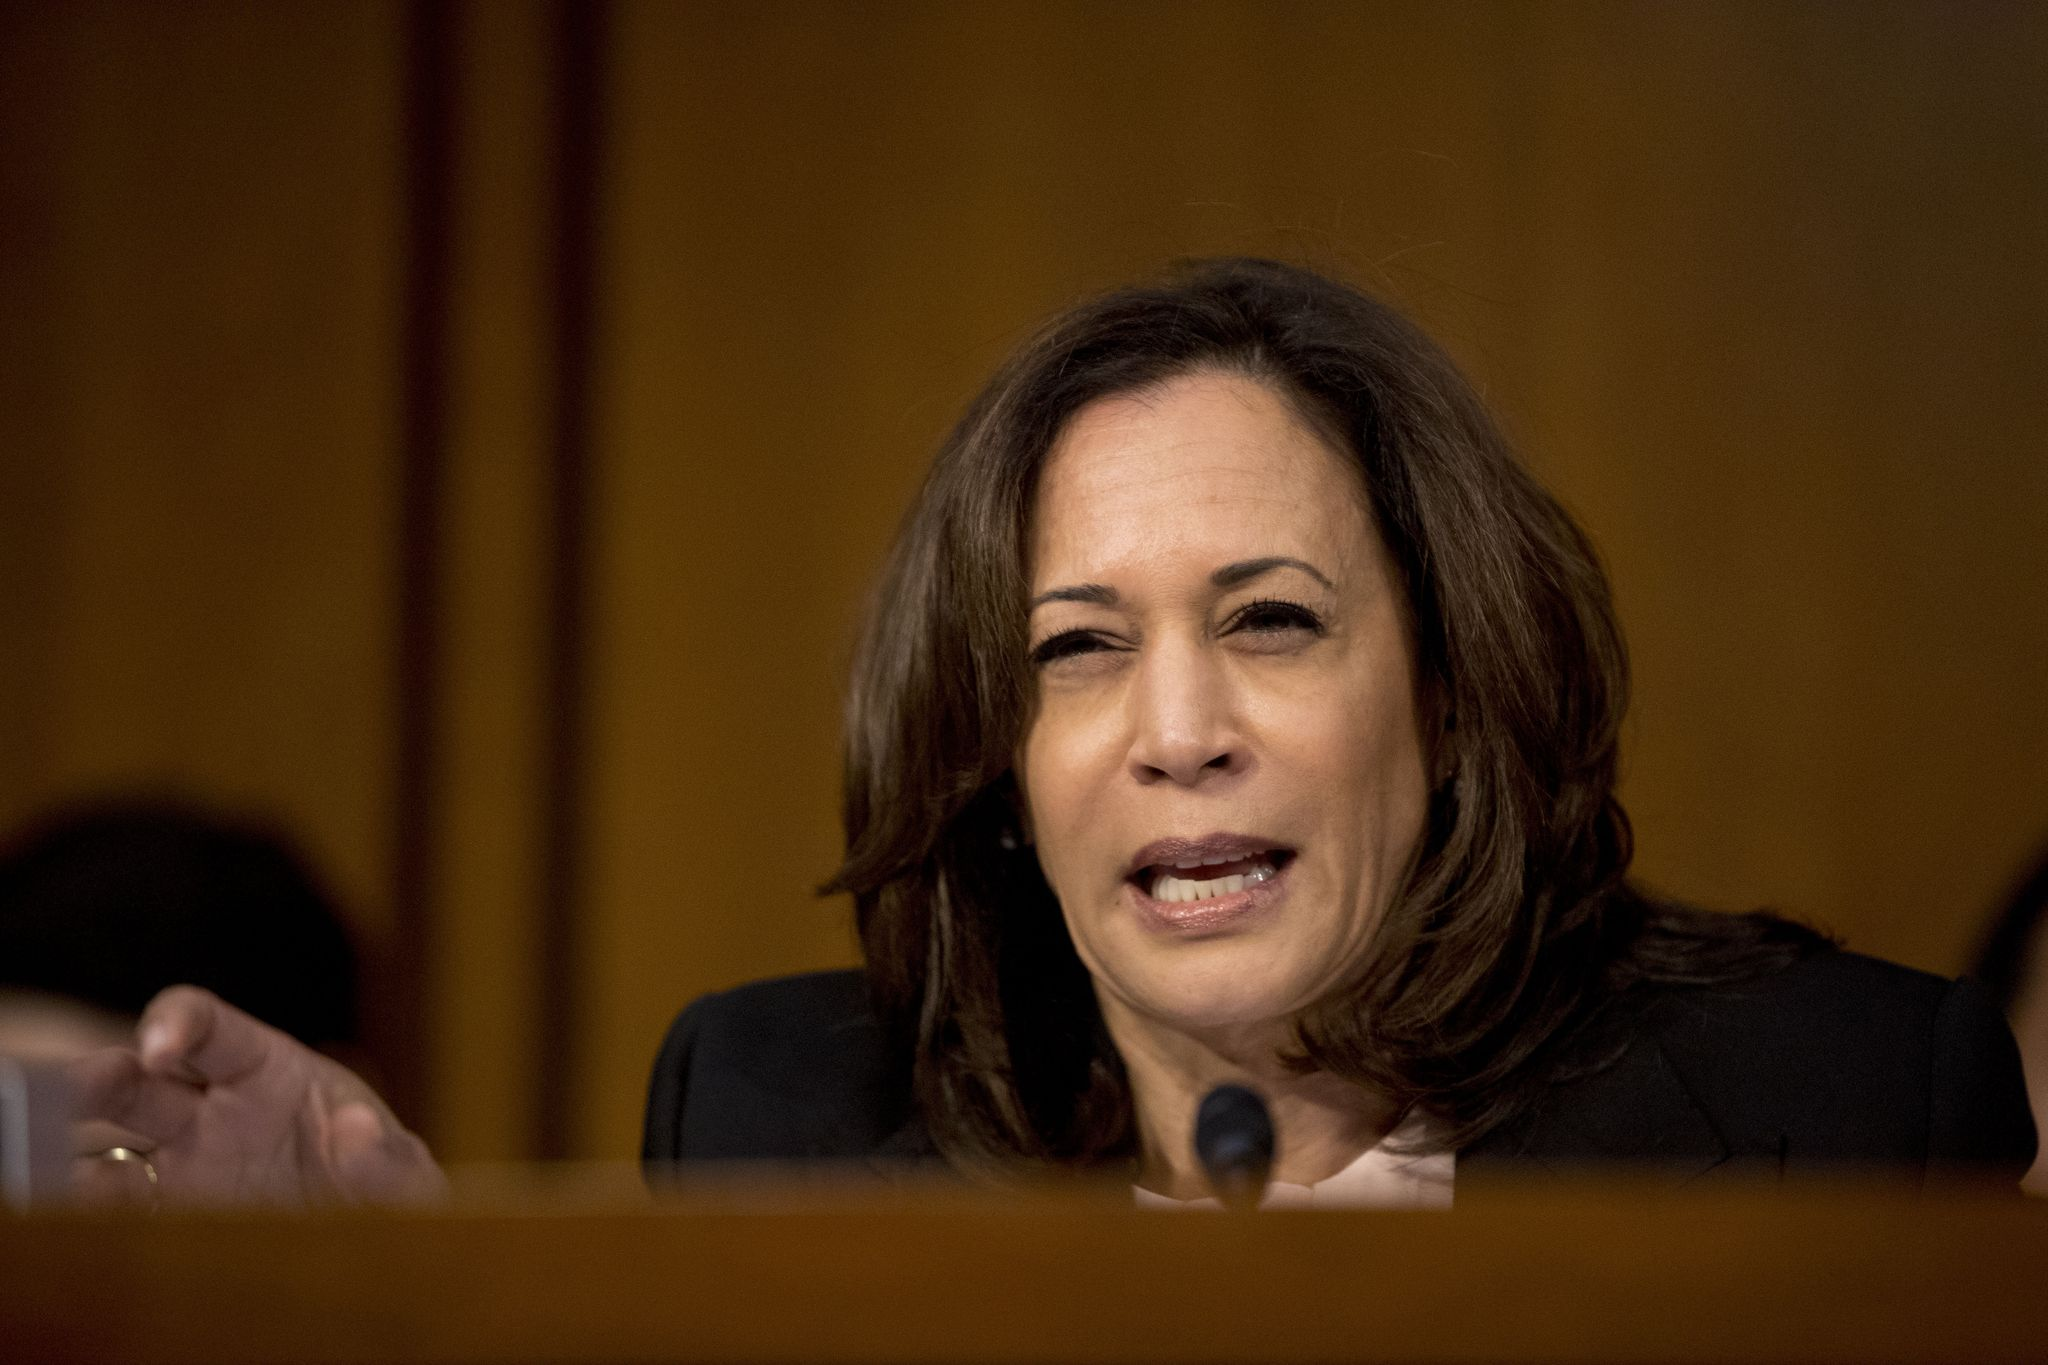 Sen. Kamala Harris to vote 'no' on AG nominee Barr